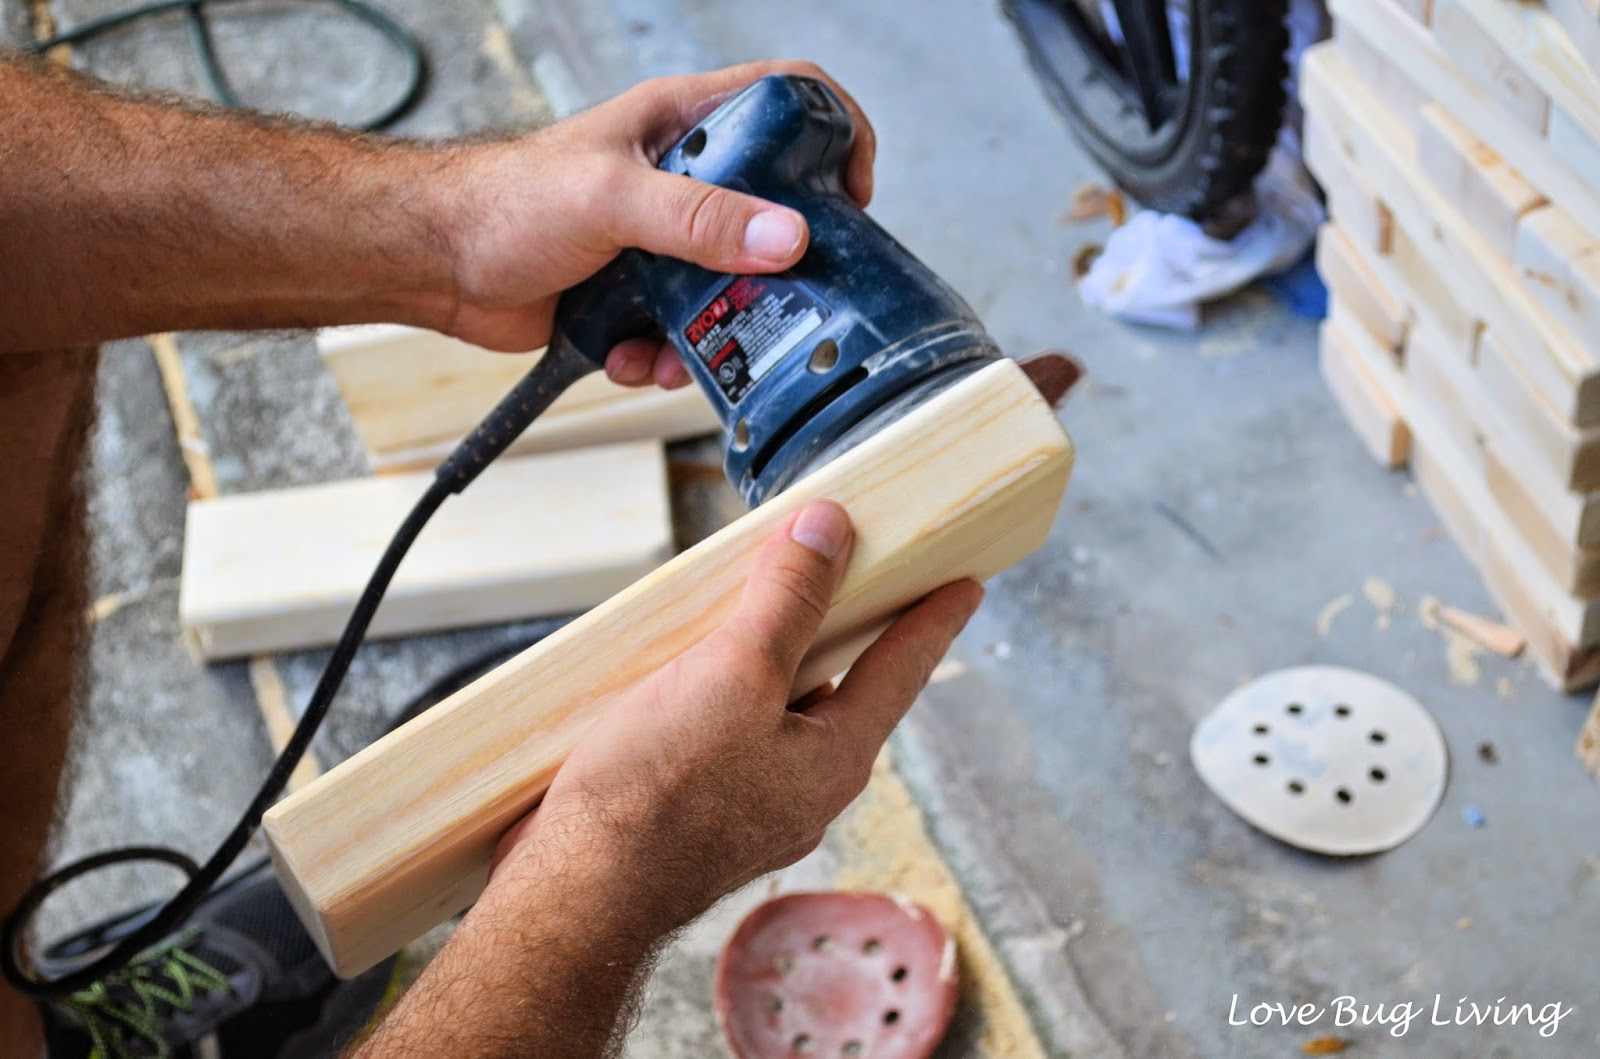 Love bug living diy giant jenga game this isnt a tough game to make yourself all you need are some 2x4s a chop saw and a sander a jenga game has 54 game pieces solutioingenieria Gallery